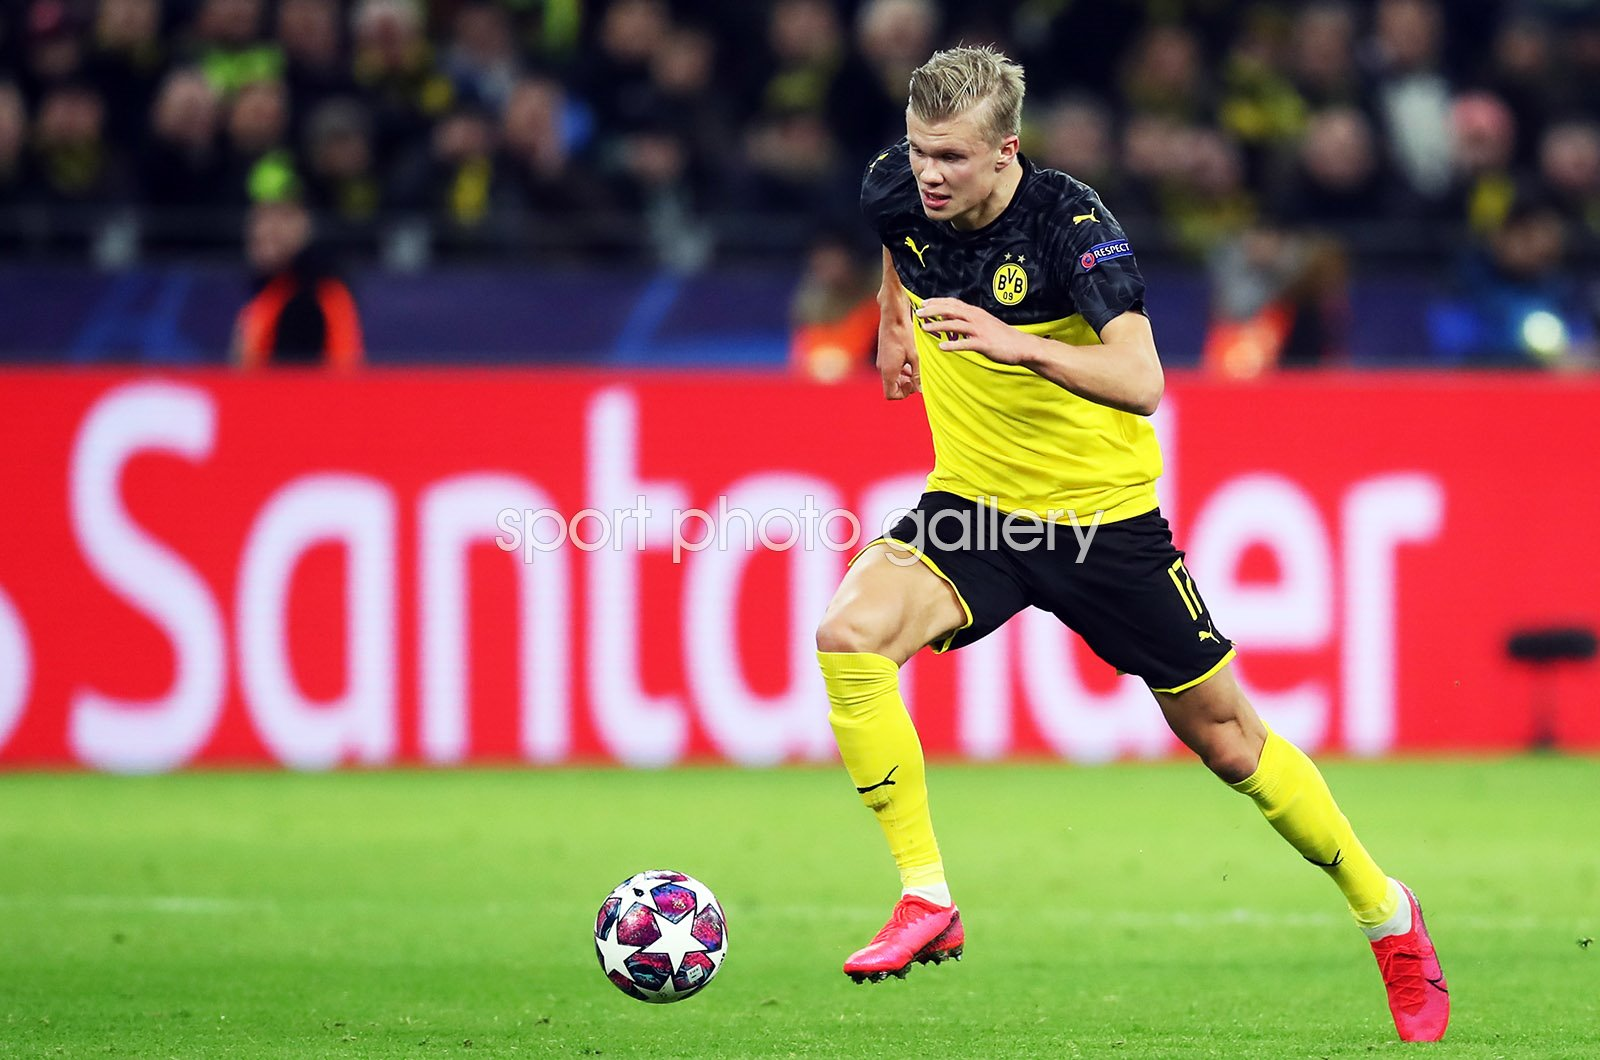 Erling Haaland Dortmund v Paris Saint-Germain Champions League 2020